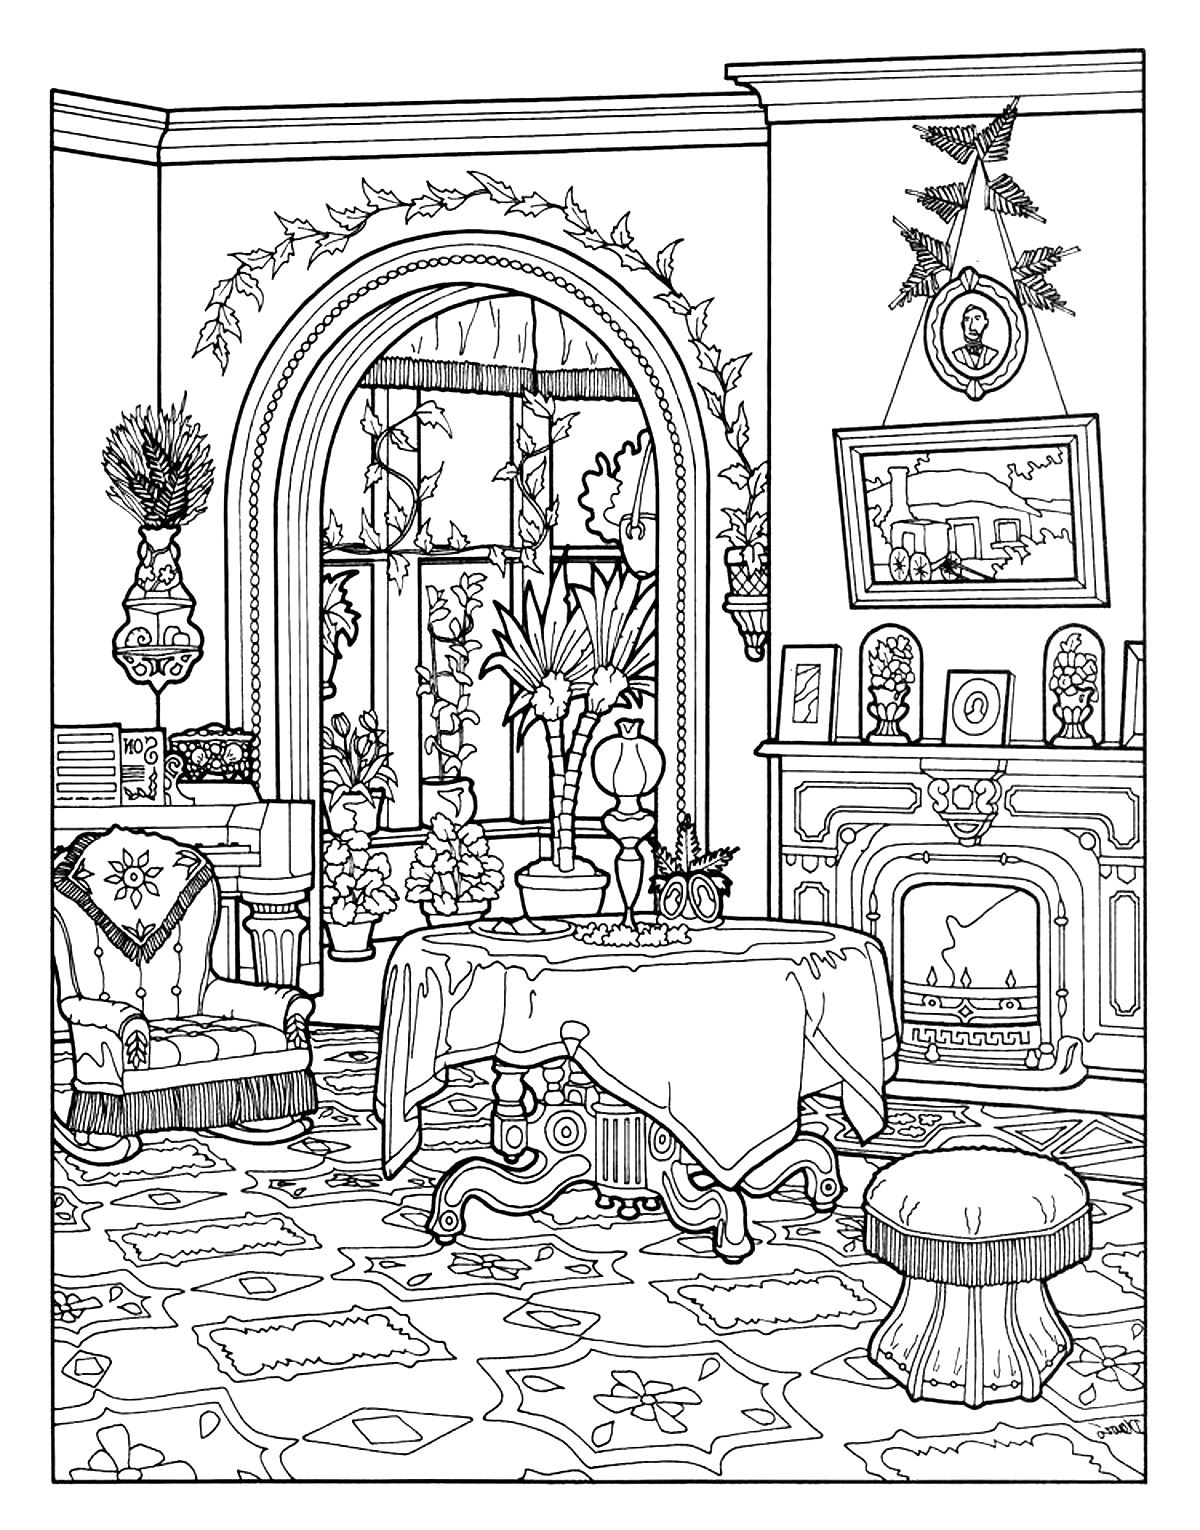 Coloring sheet of a victorian interior